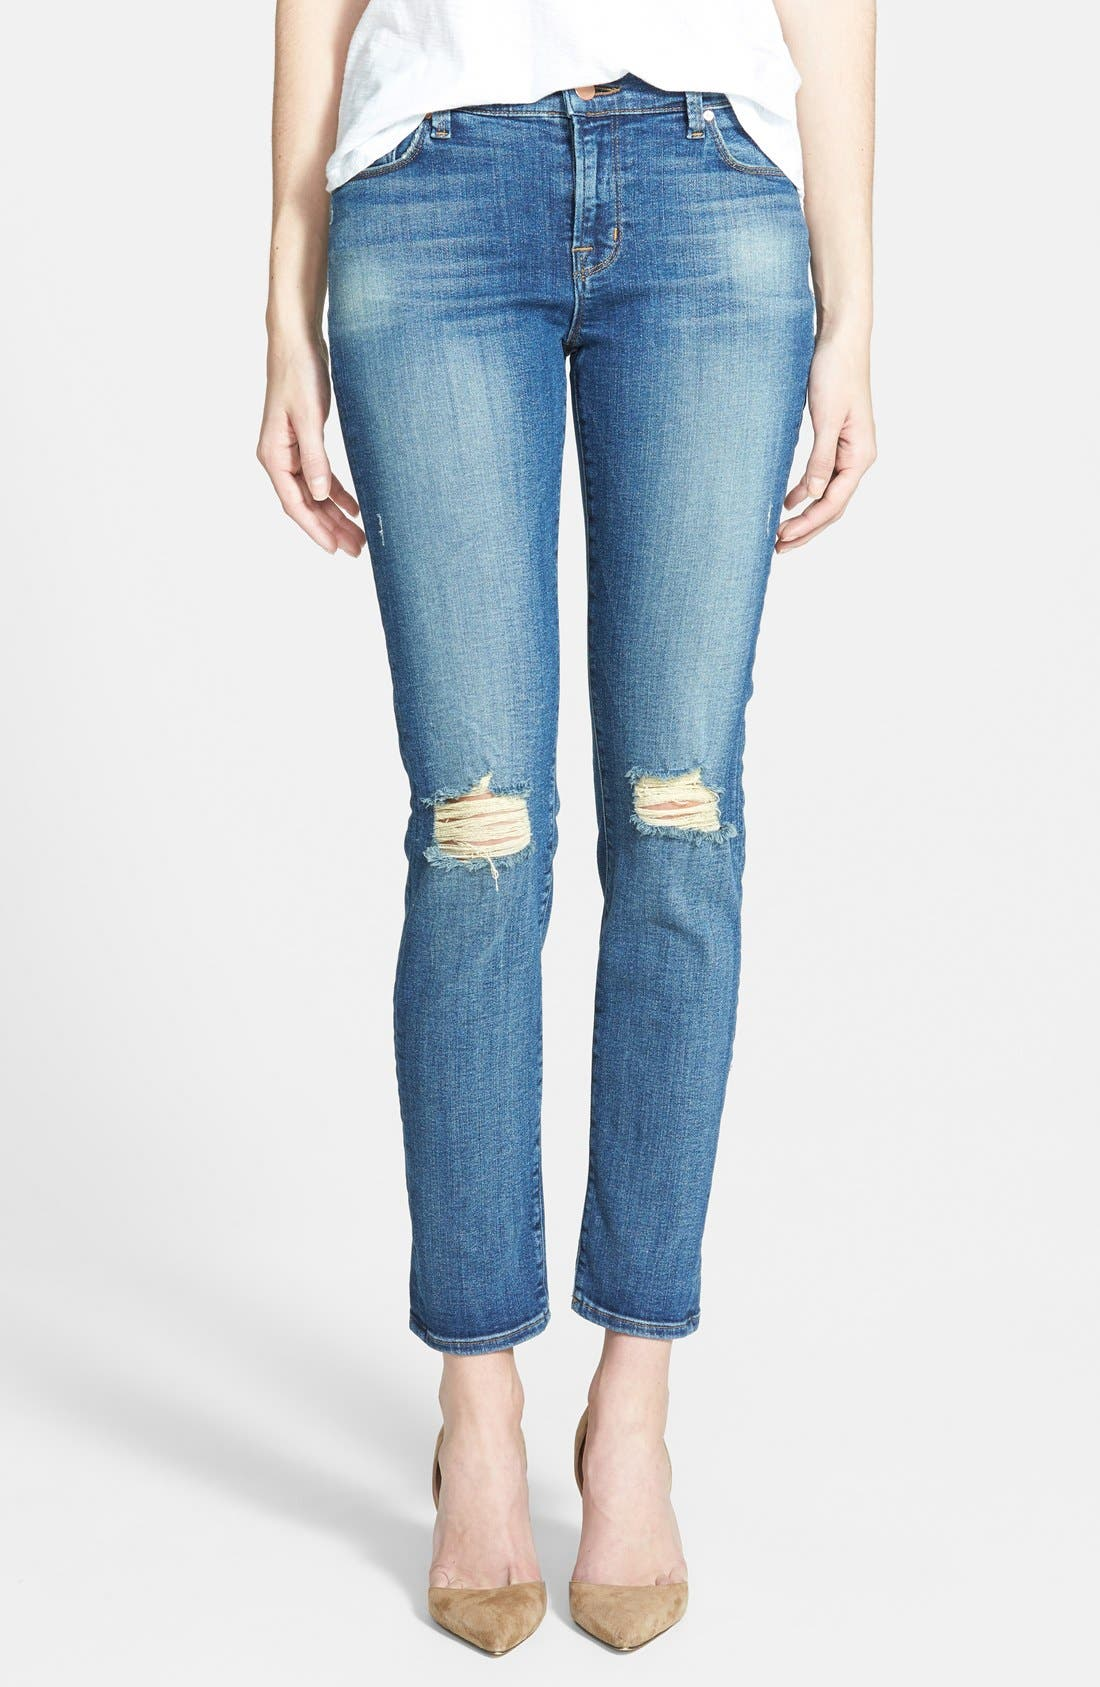 Alternate Image 1 Selected - J Brand Mid-Rise Skinny Jeans (Fray)